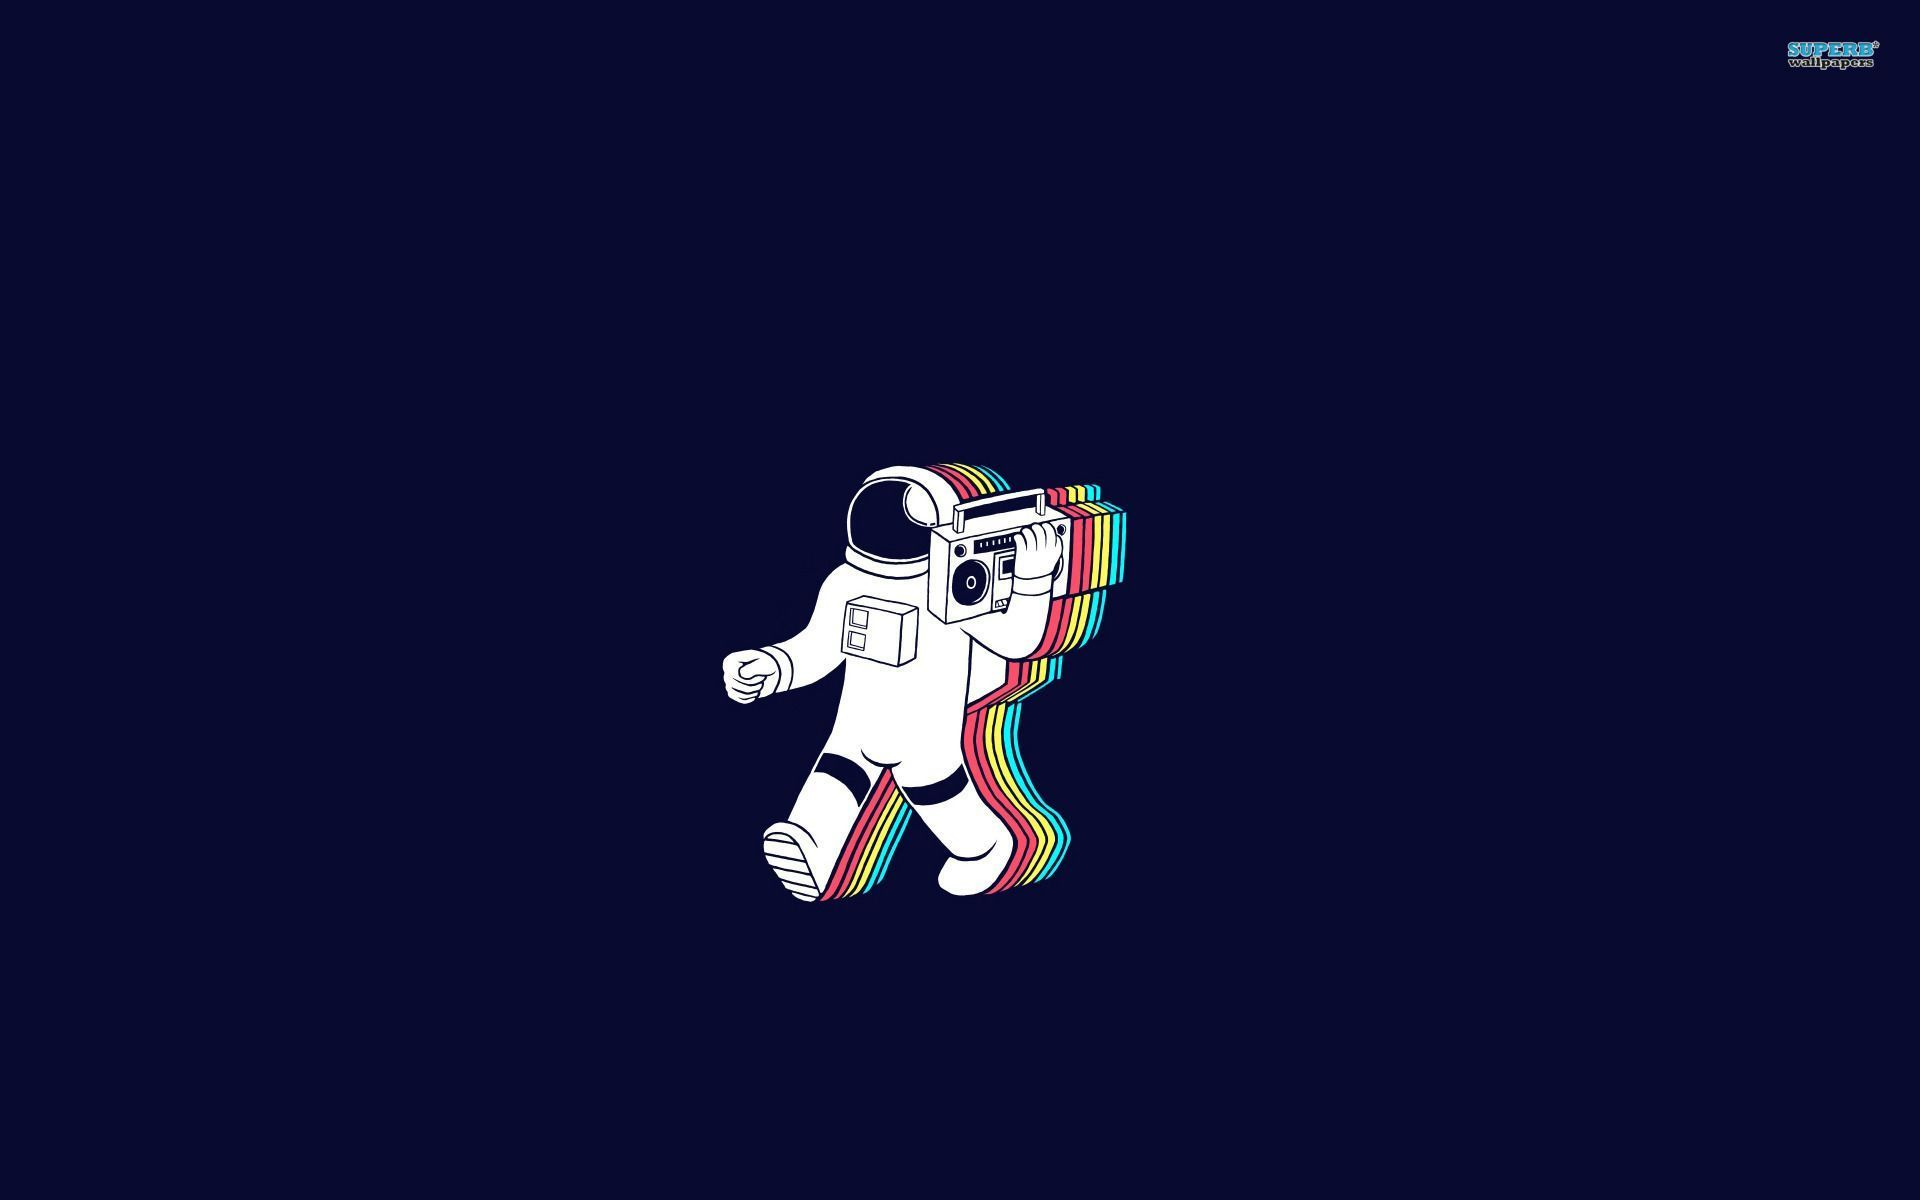 Party Astronaut Wallpaper Music Wallpapers Astronaut Wallpaper Desktop Wallpaper Art Aesthetic Desktop Wallpaper